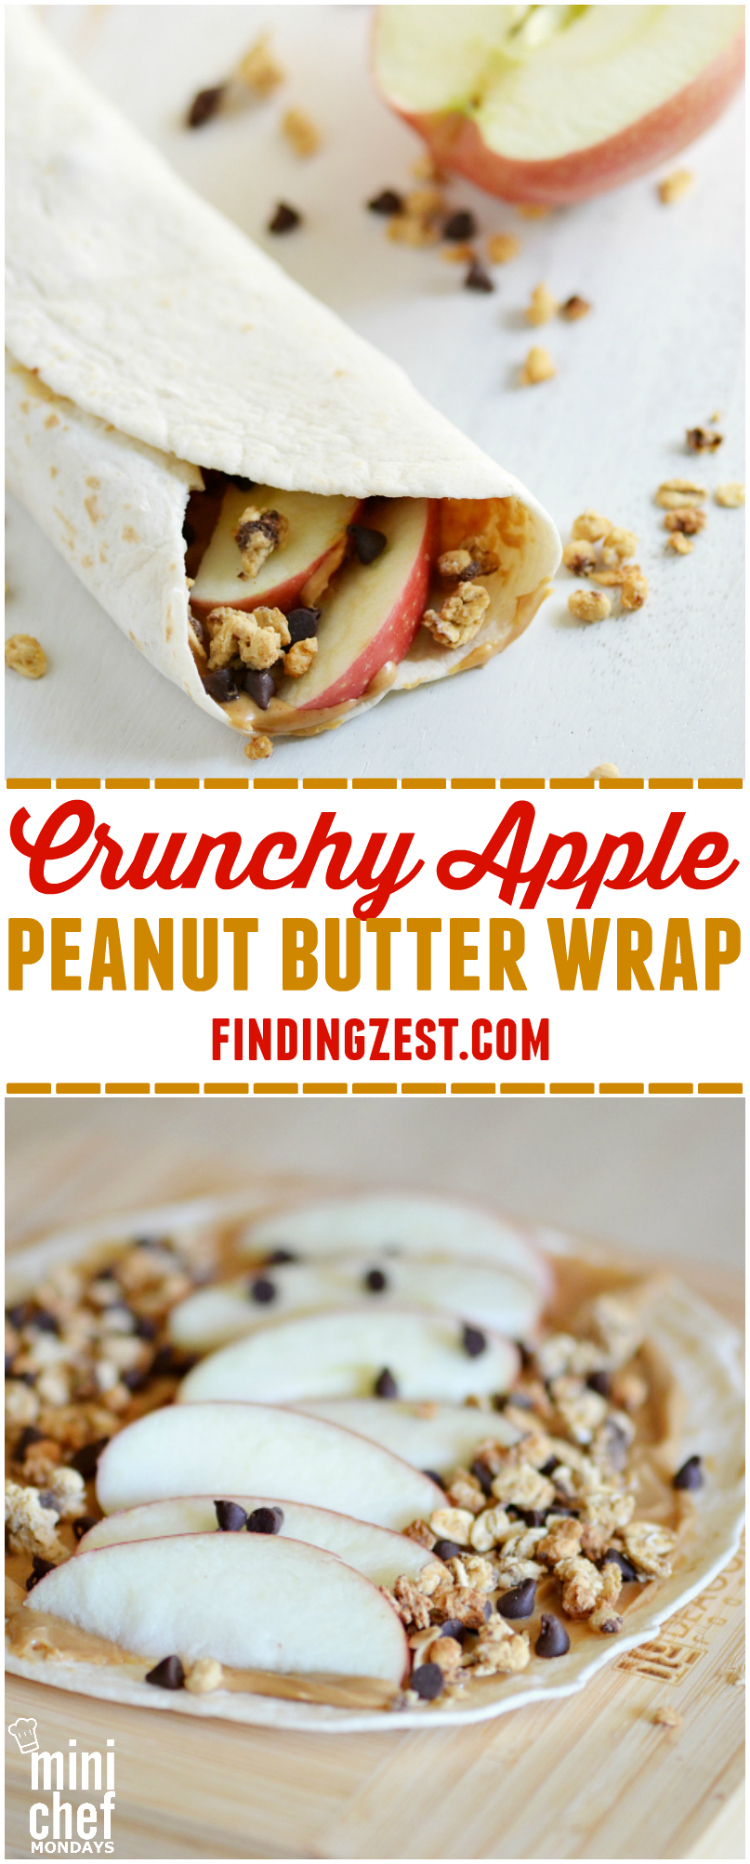 Enjoy this crunchy apple peanut butter wrap as a breakfast on the go, fun lunch option or hearty after school snack. It is protein packed. Kids will love this wrap for back to school!